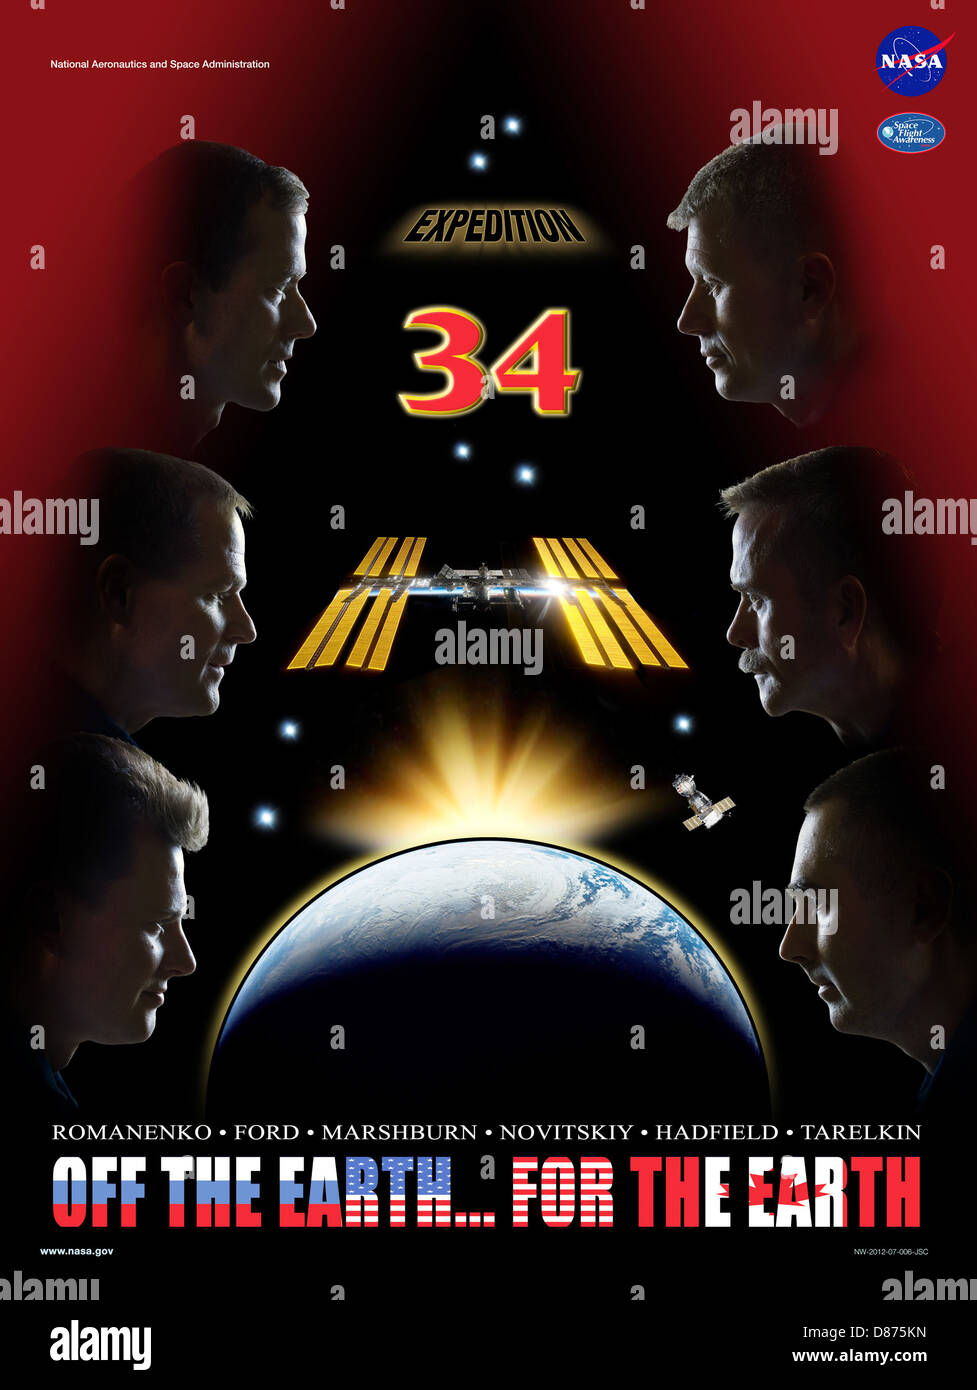 Expedition 34 crew poster.jpg - Stock Image